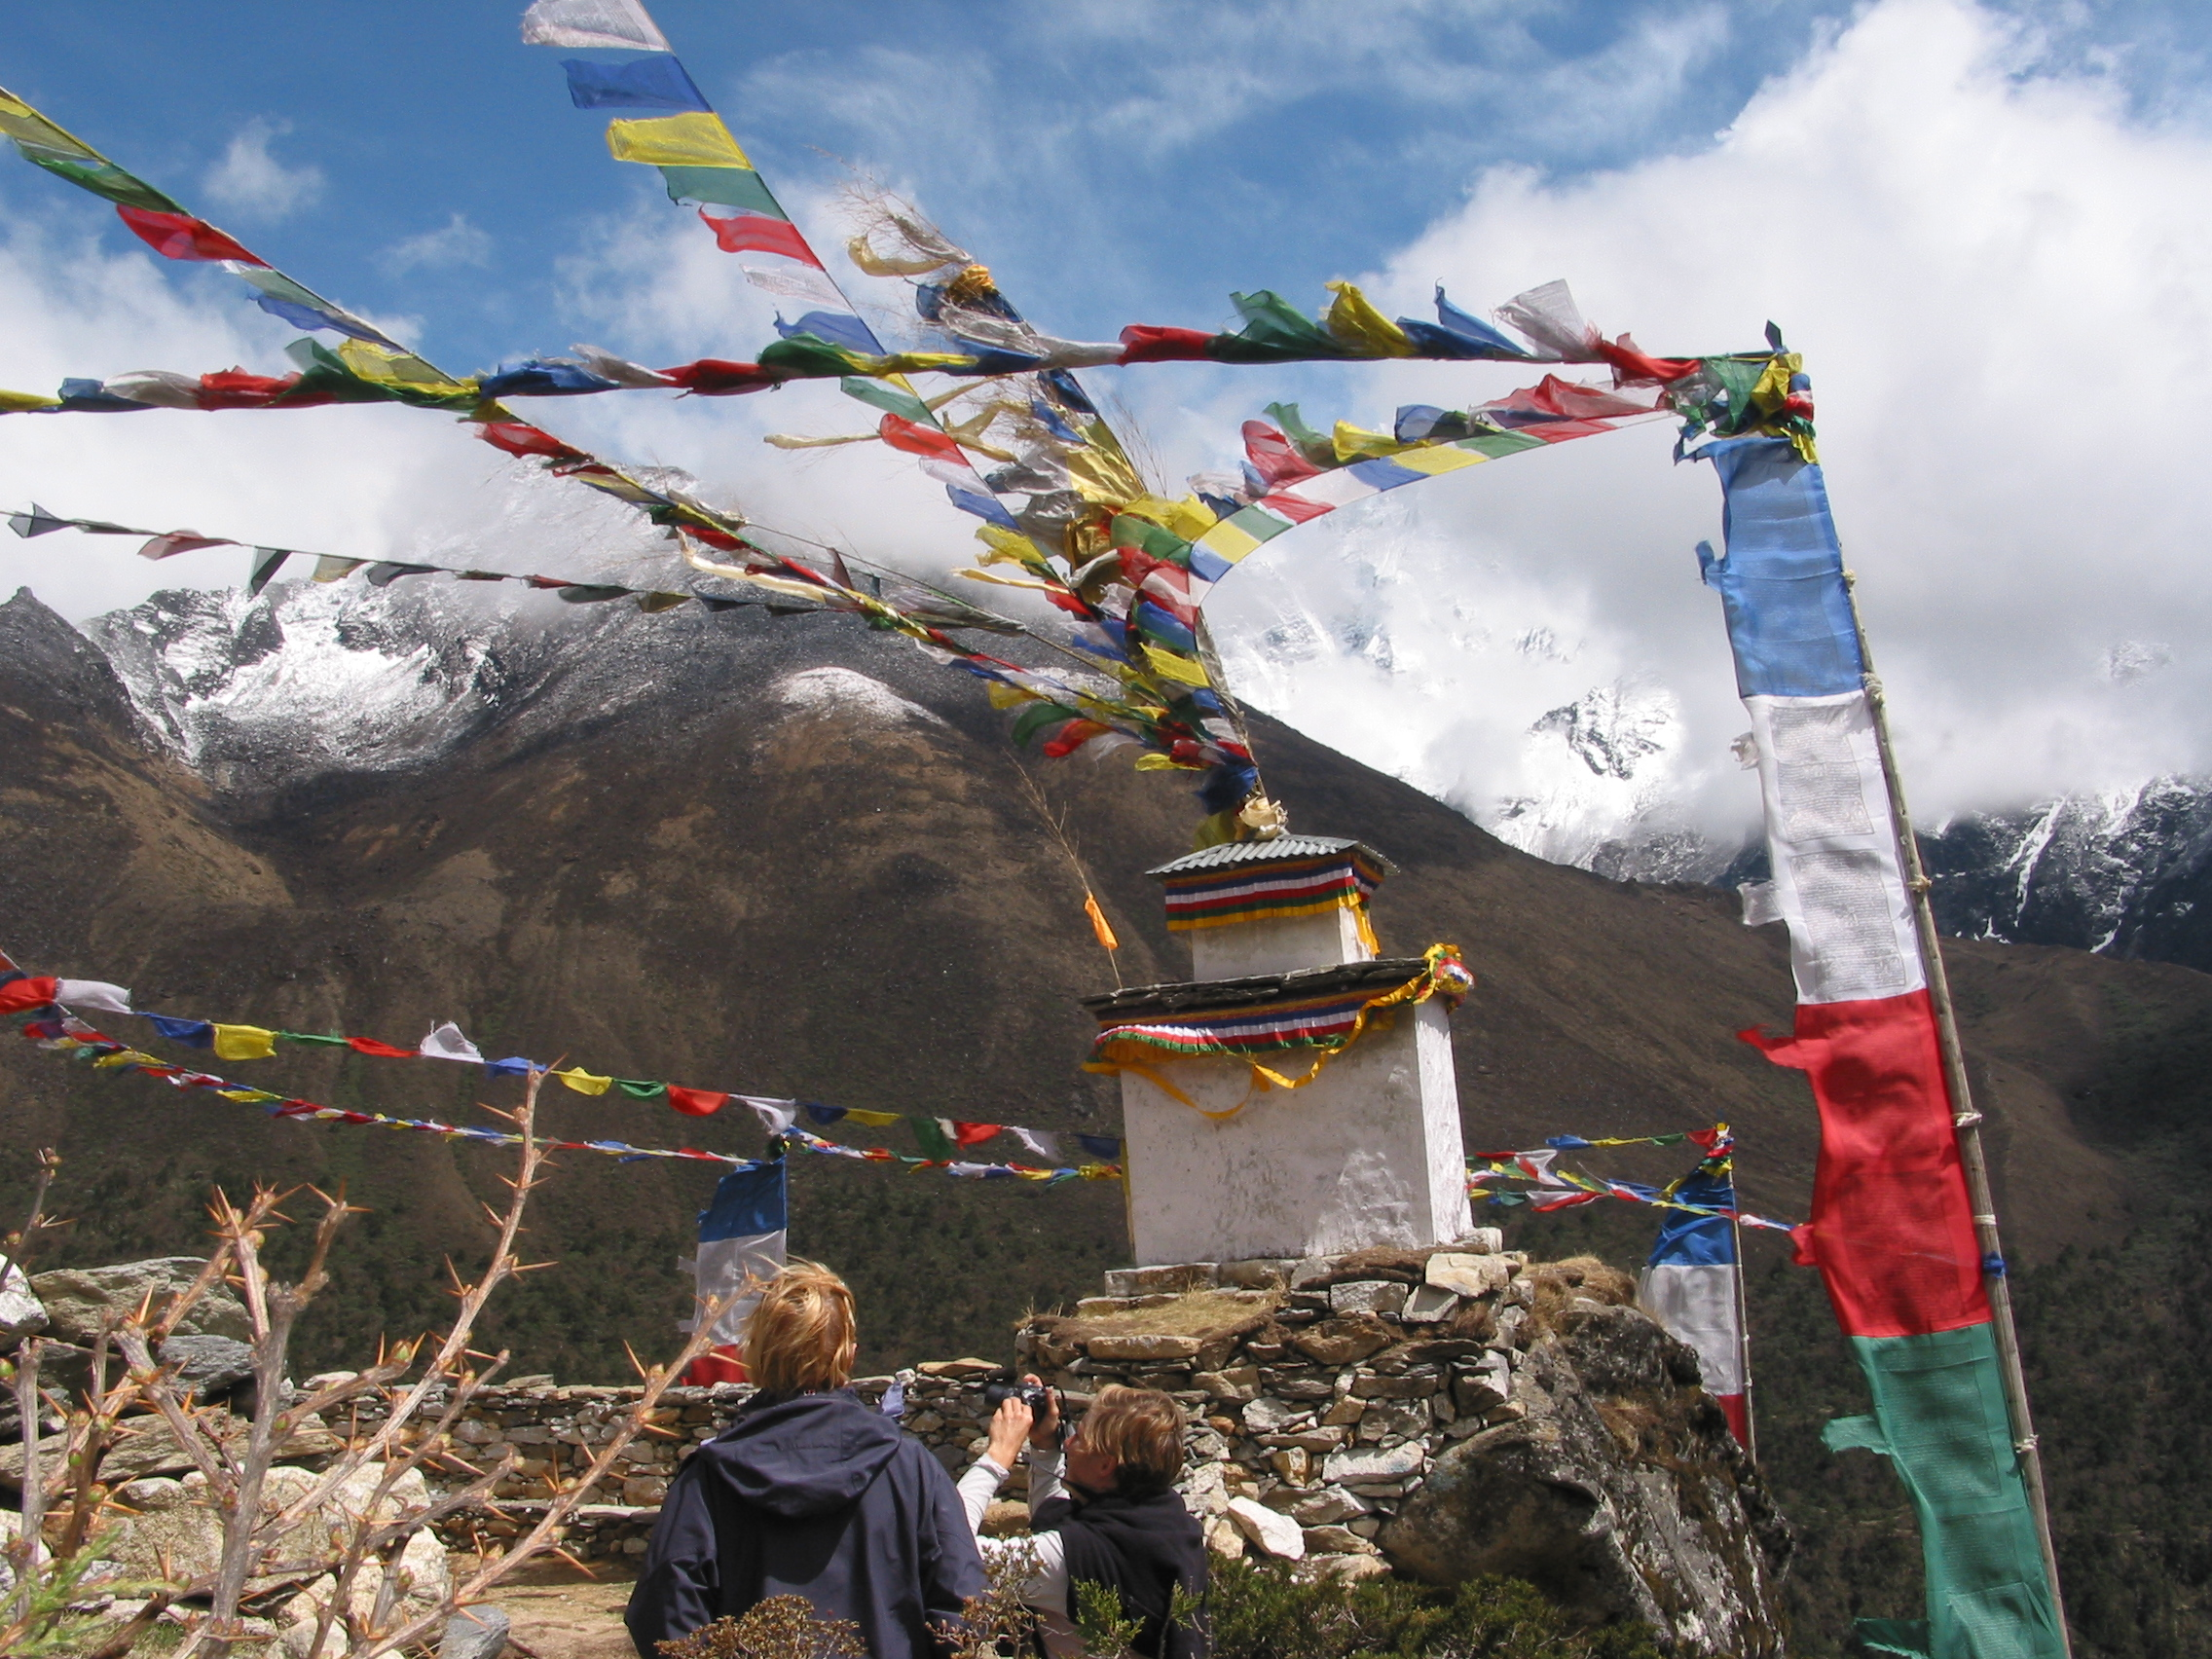 Buddhist stupa in Everest region